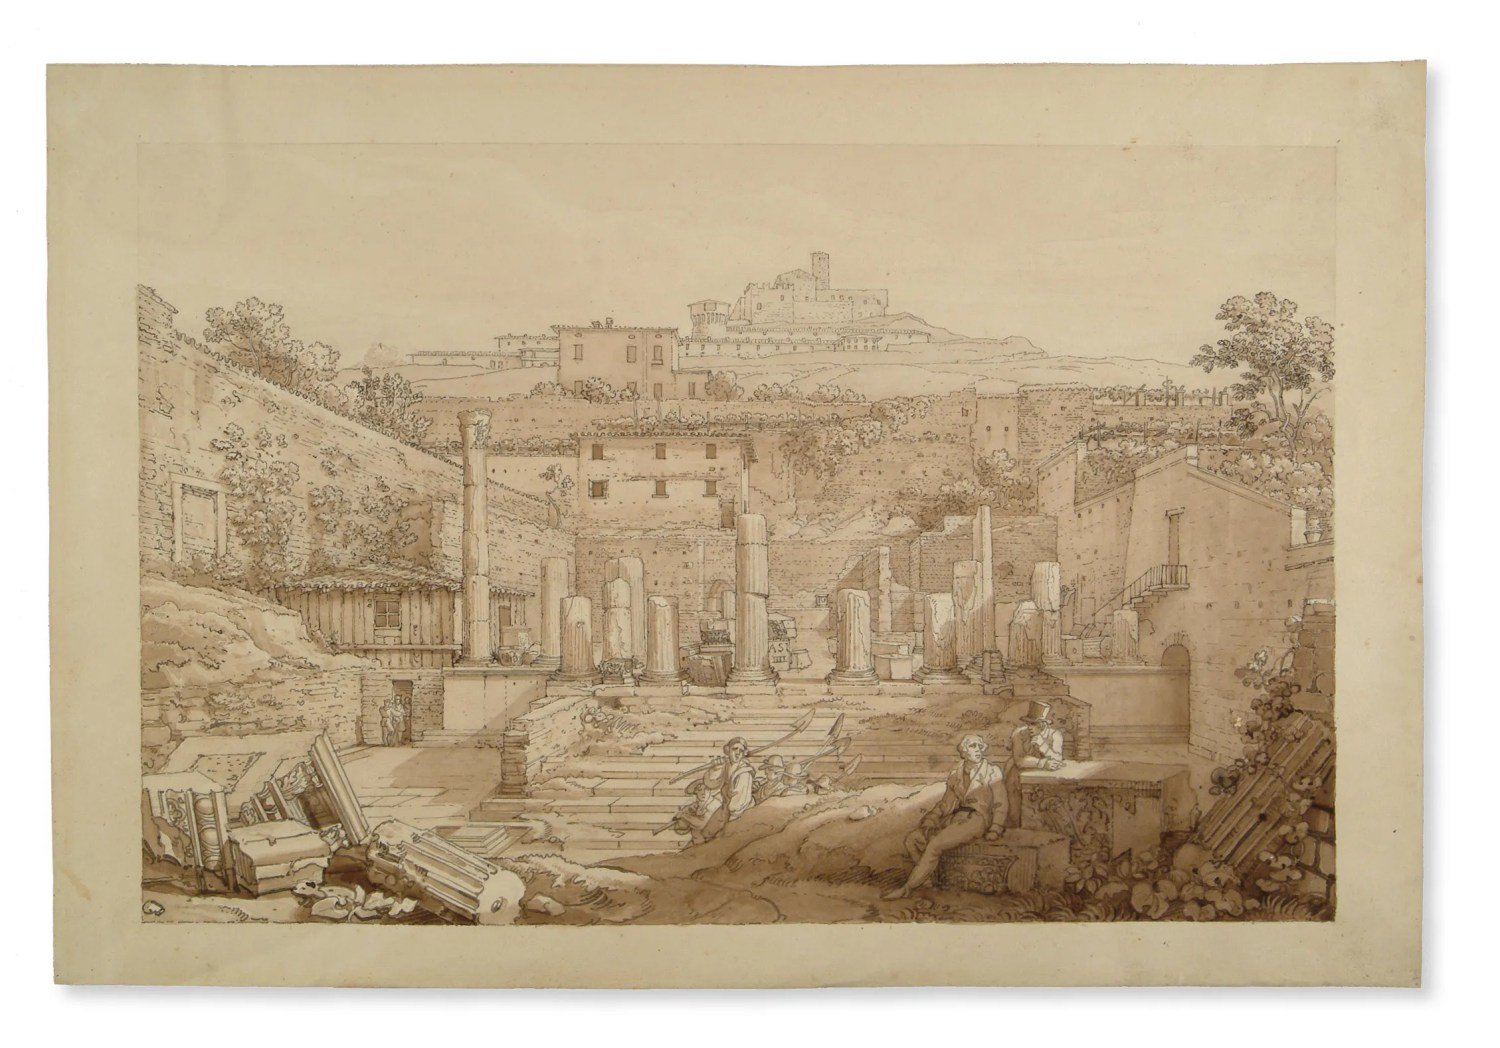 ABOVE Luigi Basiletti, The Capitoline Temple seen from the south at the end of the excavations. Ink and sepia drawing, 1826.